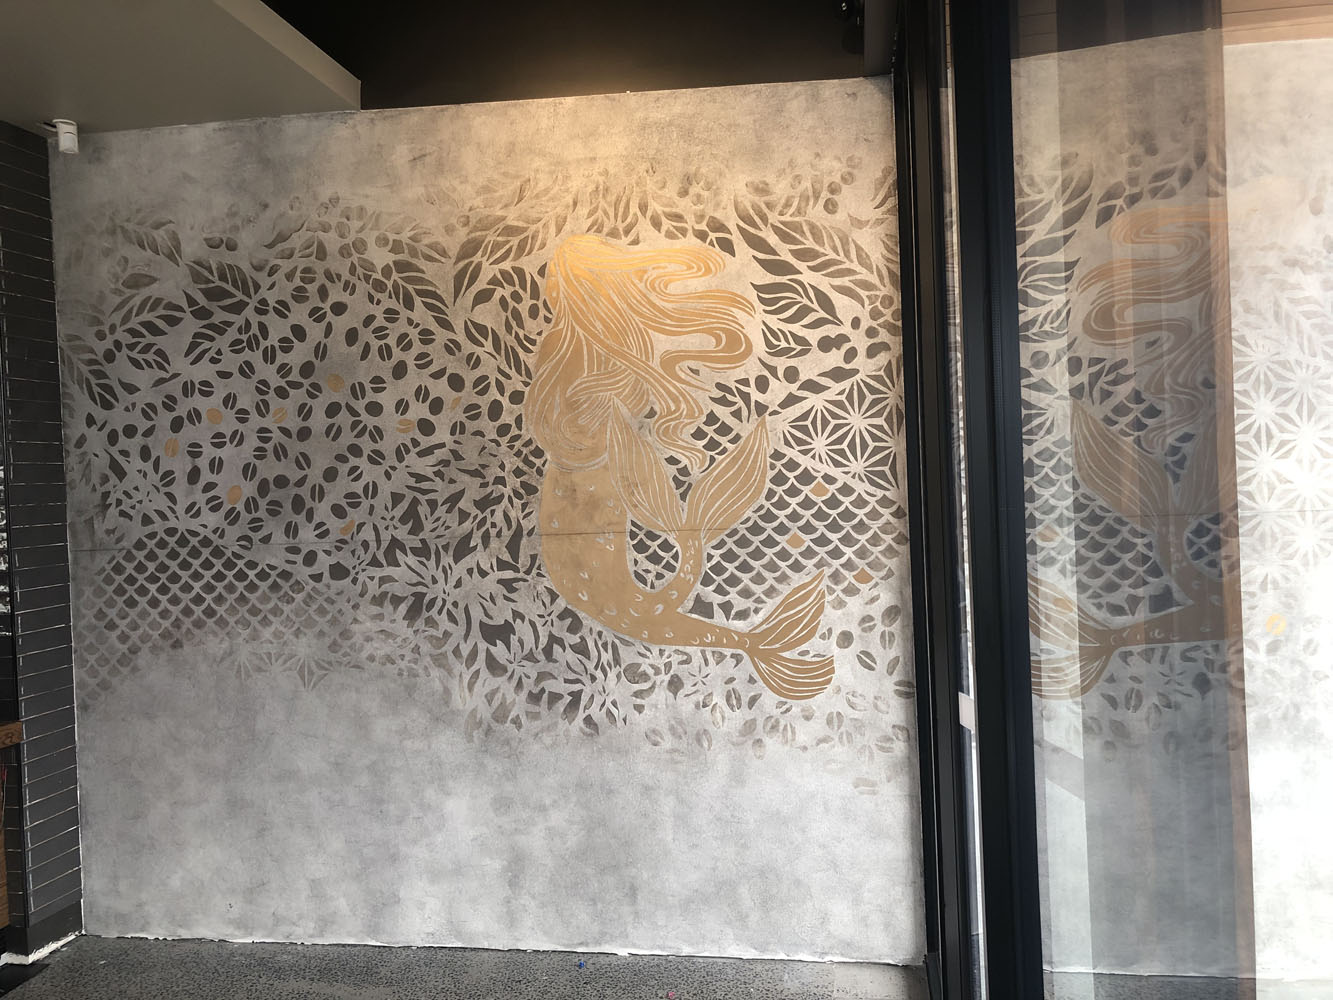 the-art-of-wall-starbucks-coolaroo-siren-wall-art-mural-2